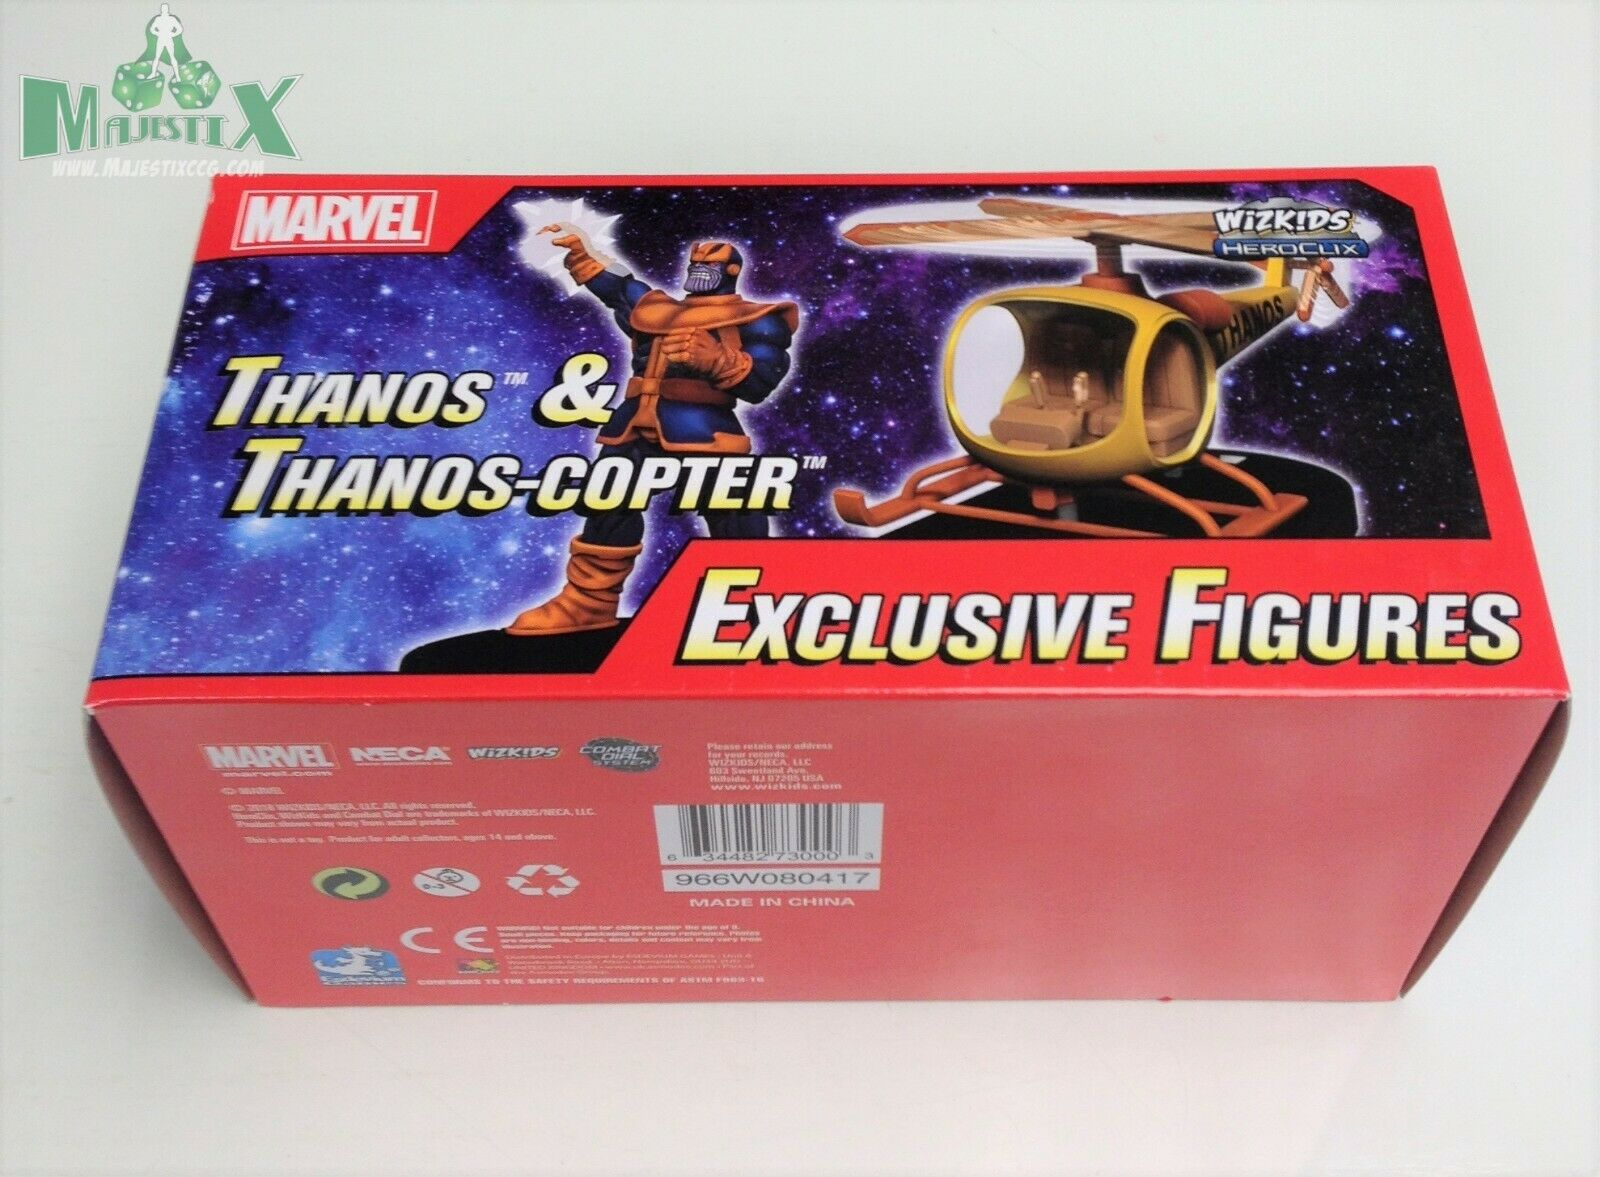 Heroclix 2018 Convention Exclusive Thanos & Thanos-Copter  MP18-002 boxed set